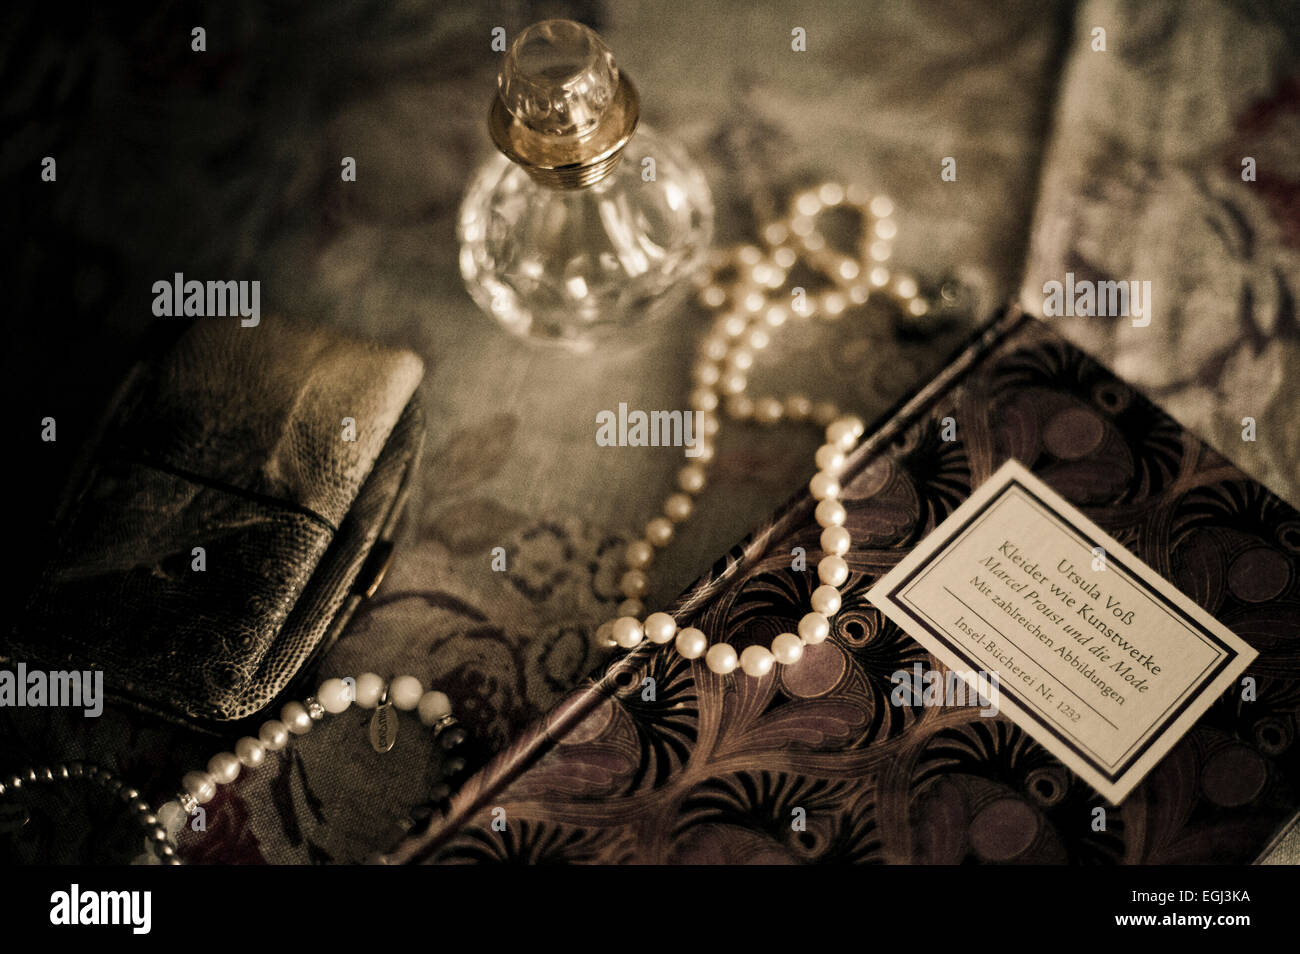 Still life with Flacon and pearl necklace, - Stock Image